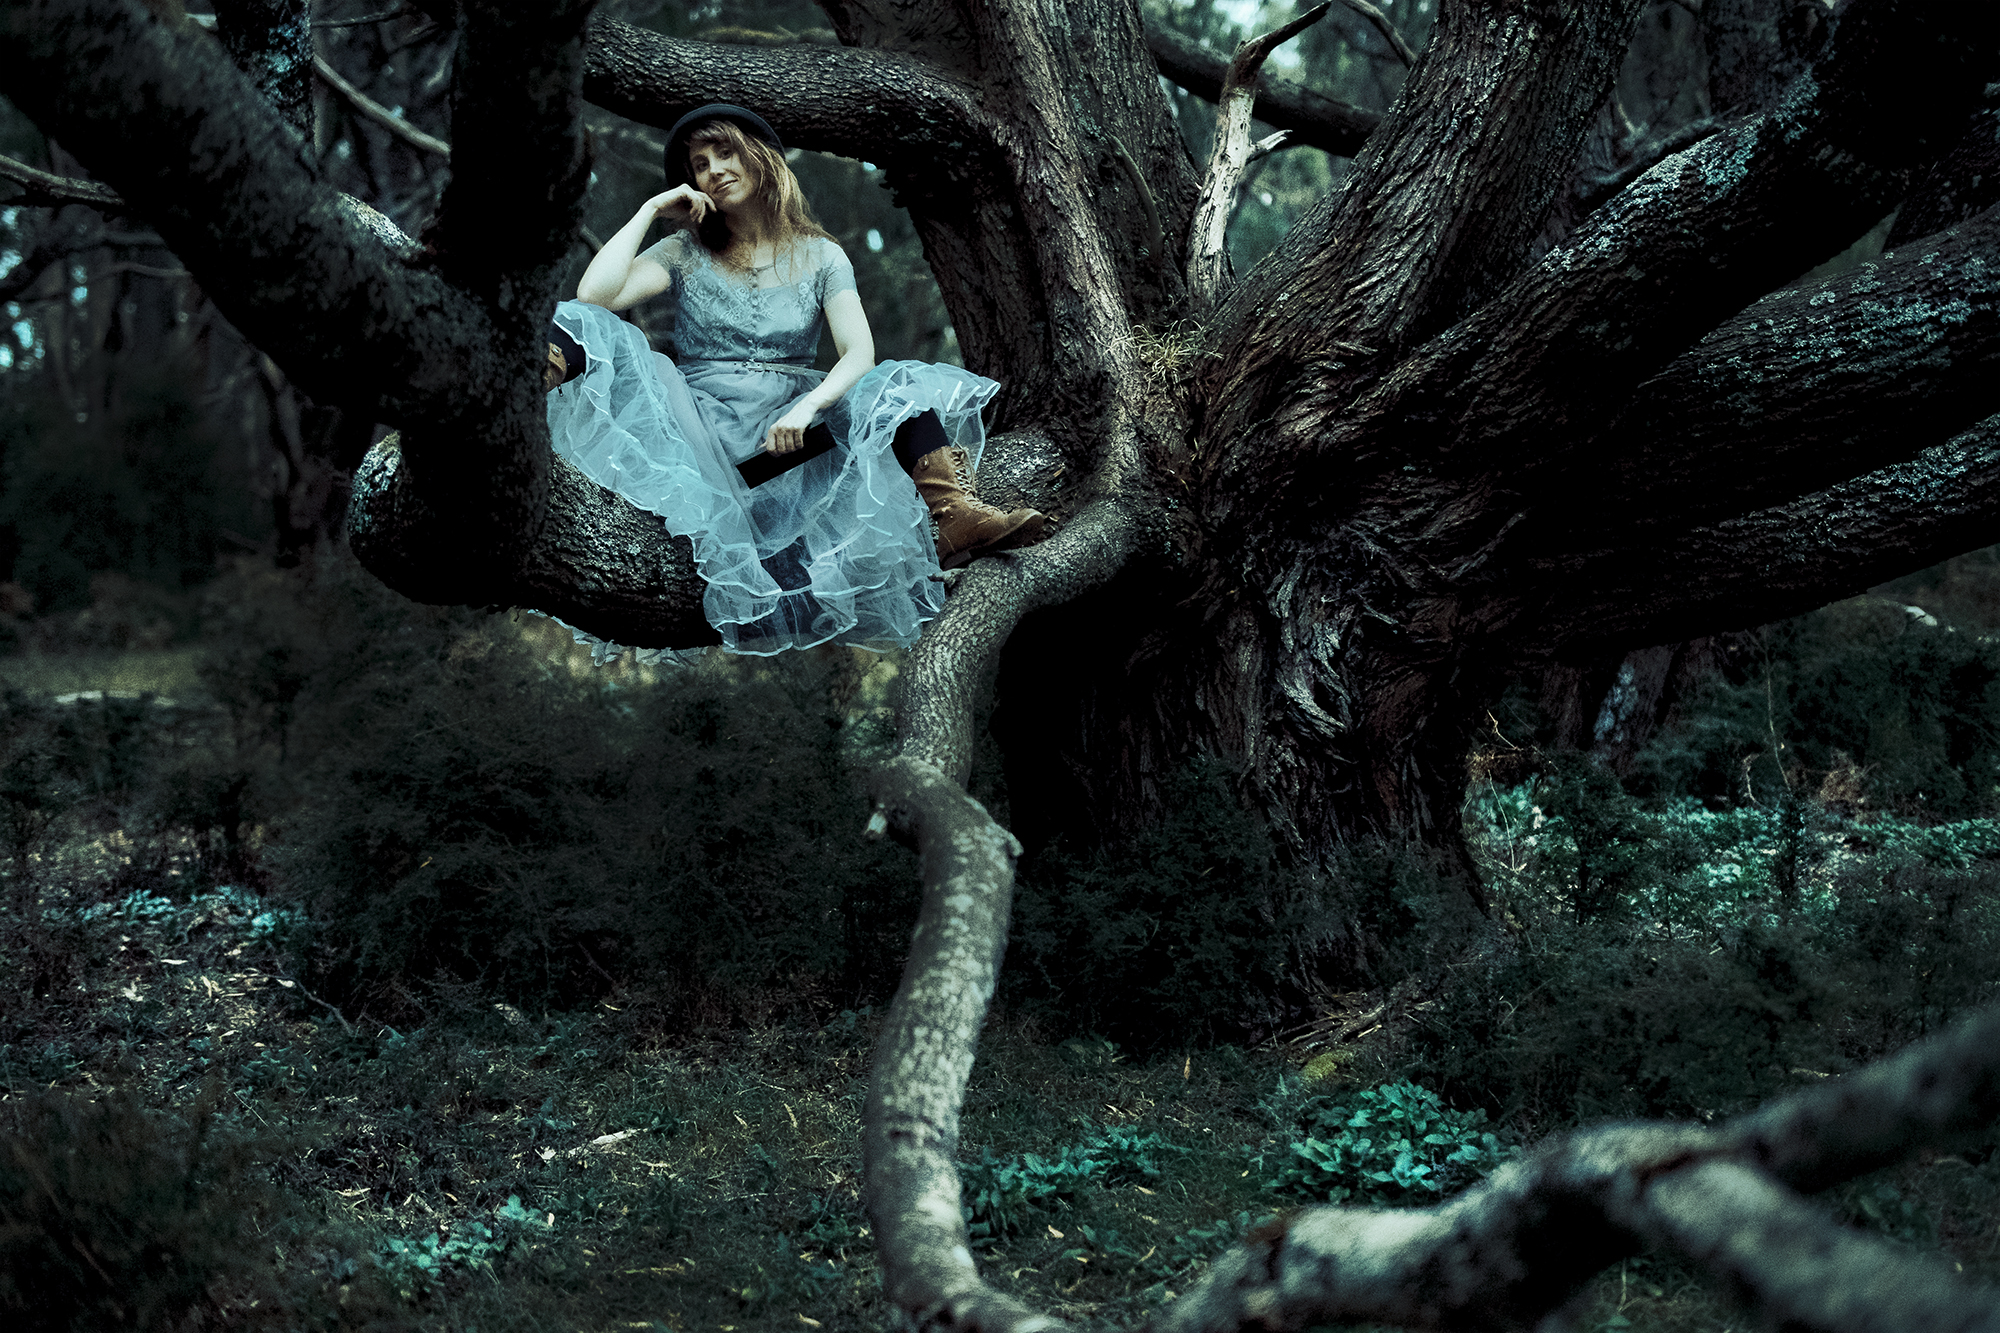 A girl who is Alice